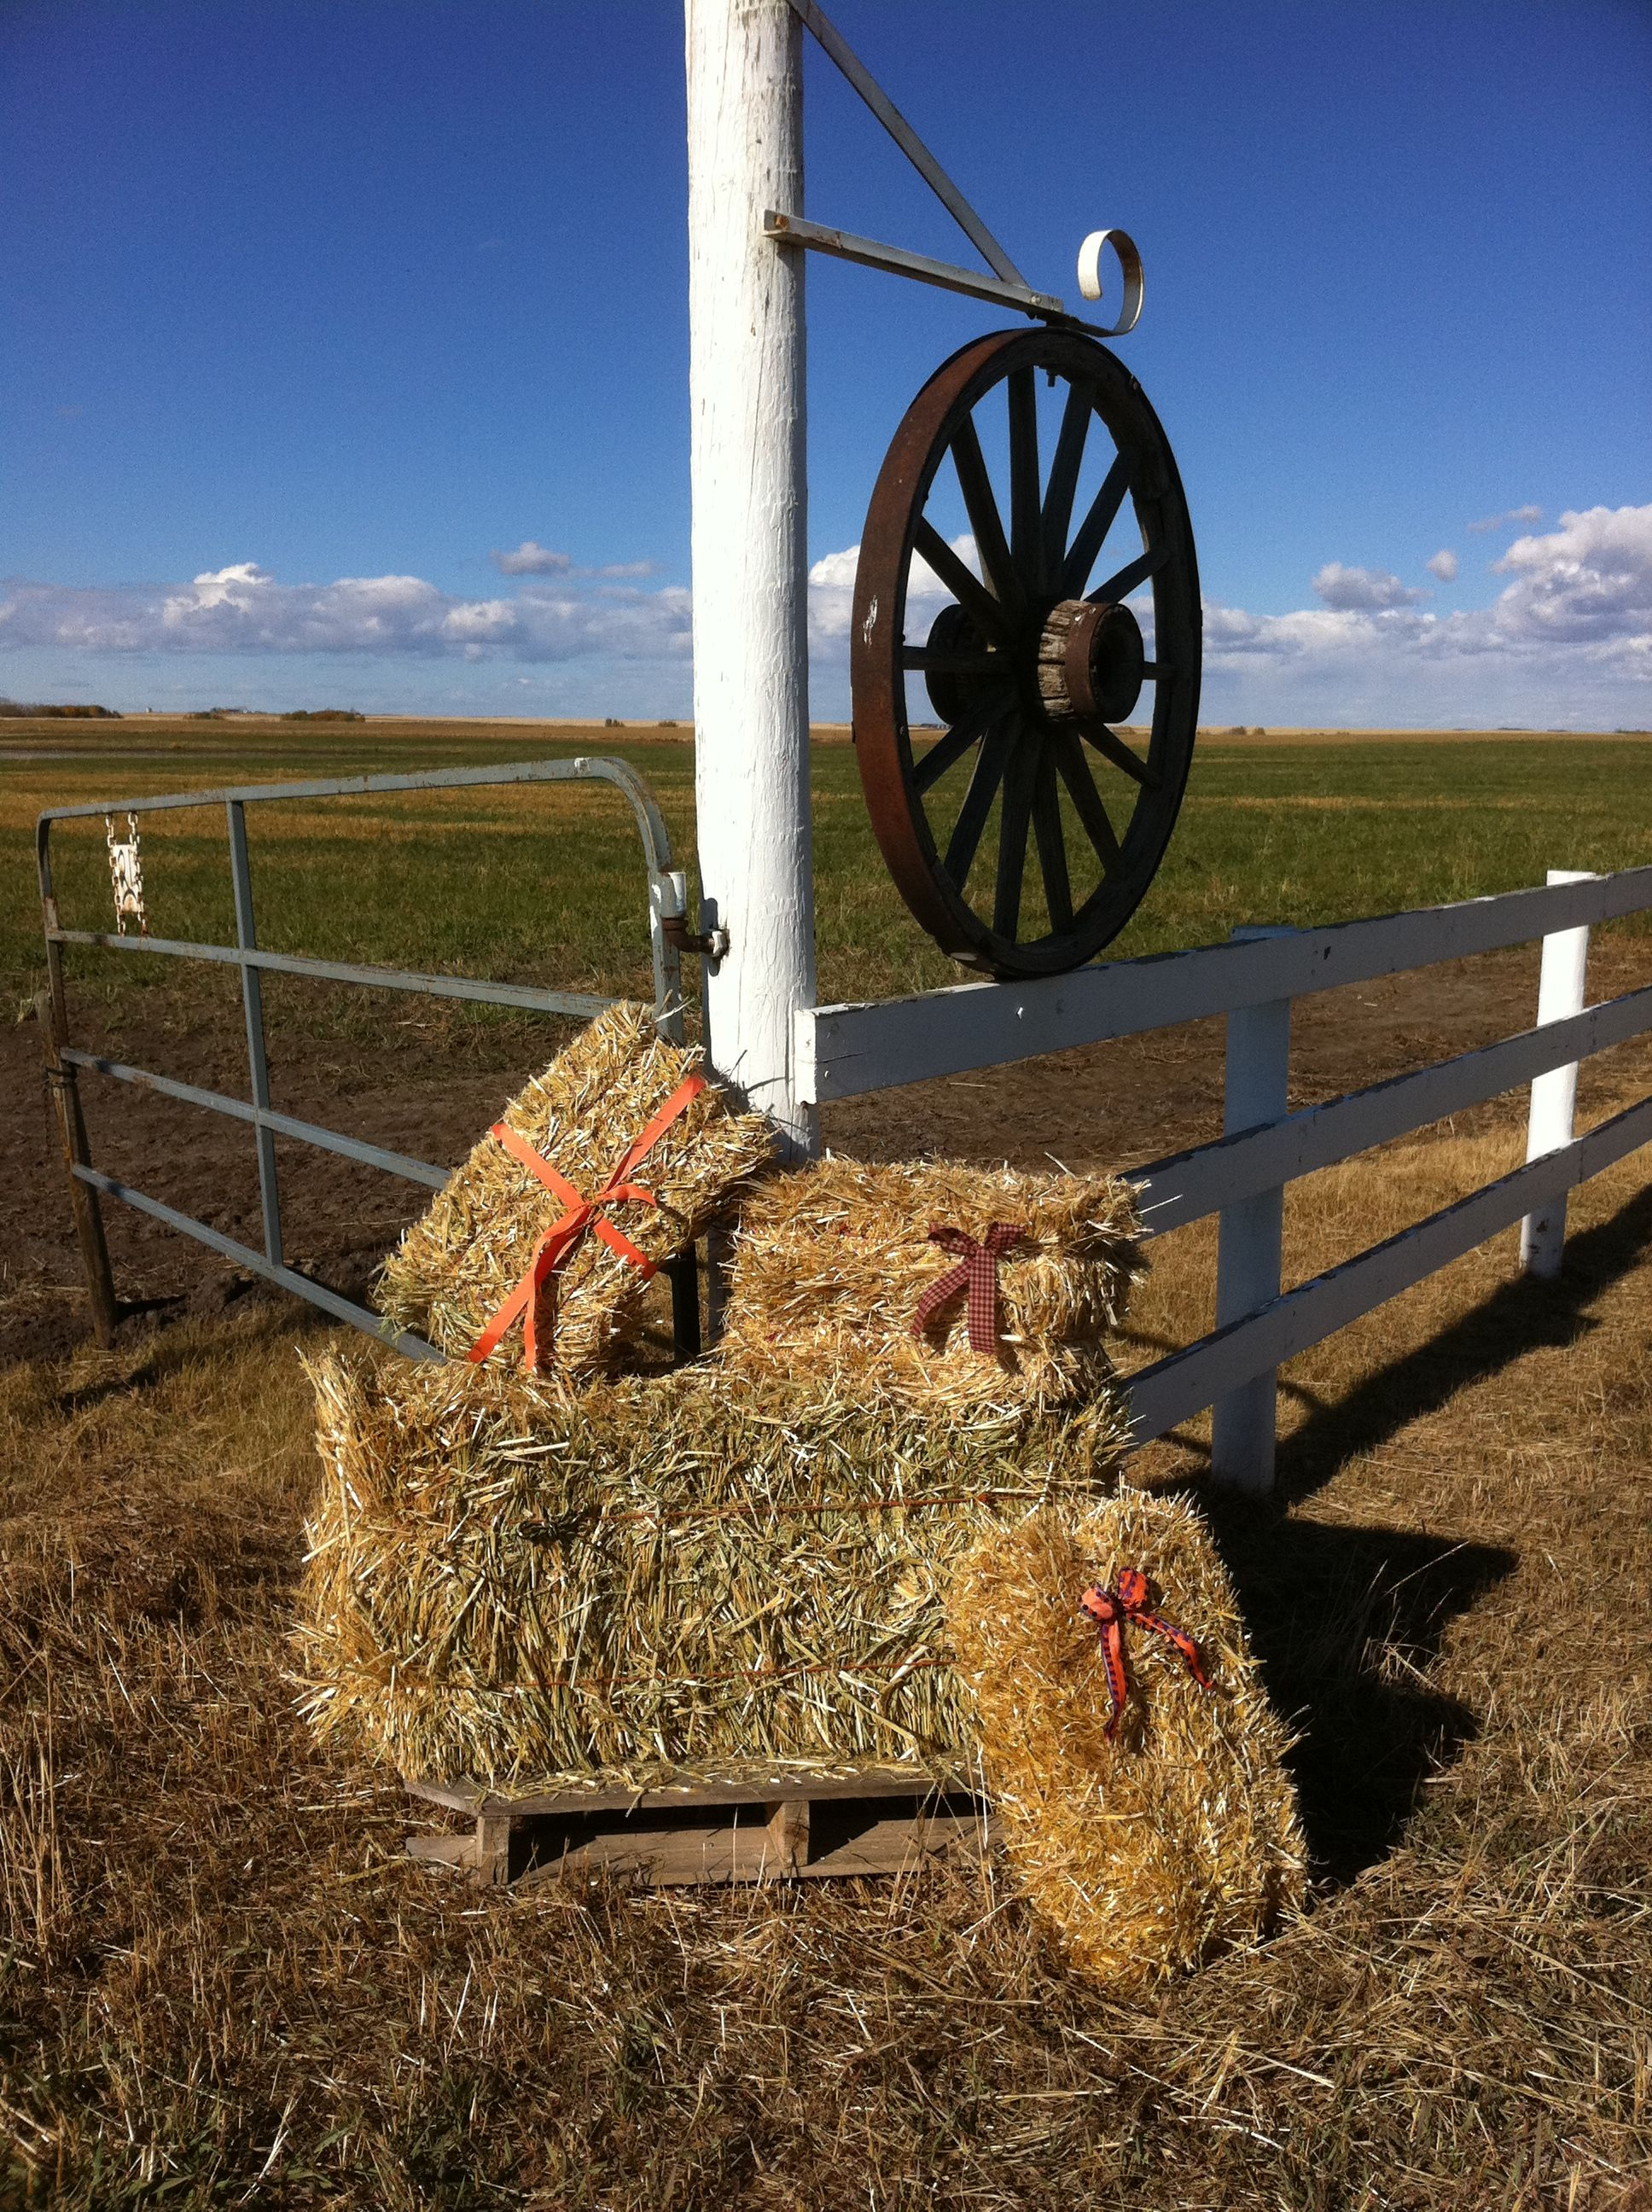 Mini Hay Straw Bales Make The Ez Est Decorations For Any Western Event Great Weddings Stampede Rodeo S Or 4h Events Too